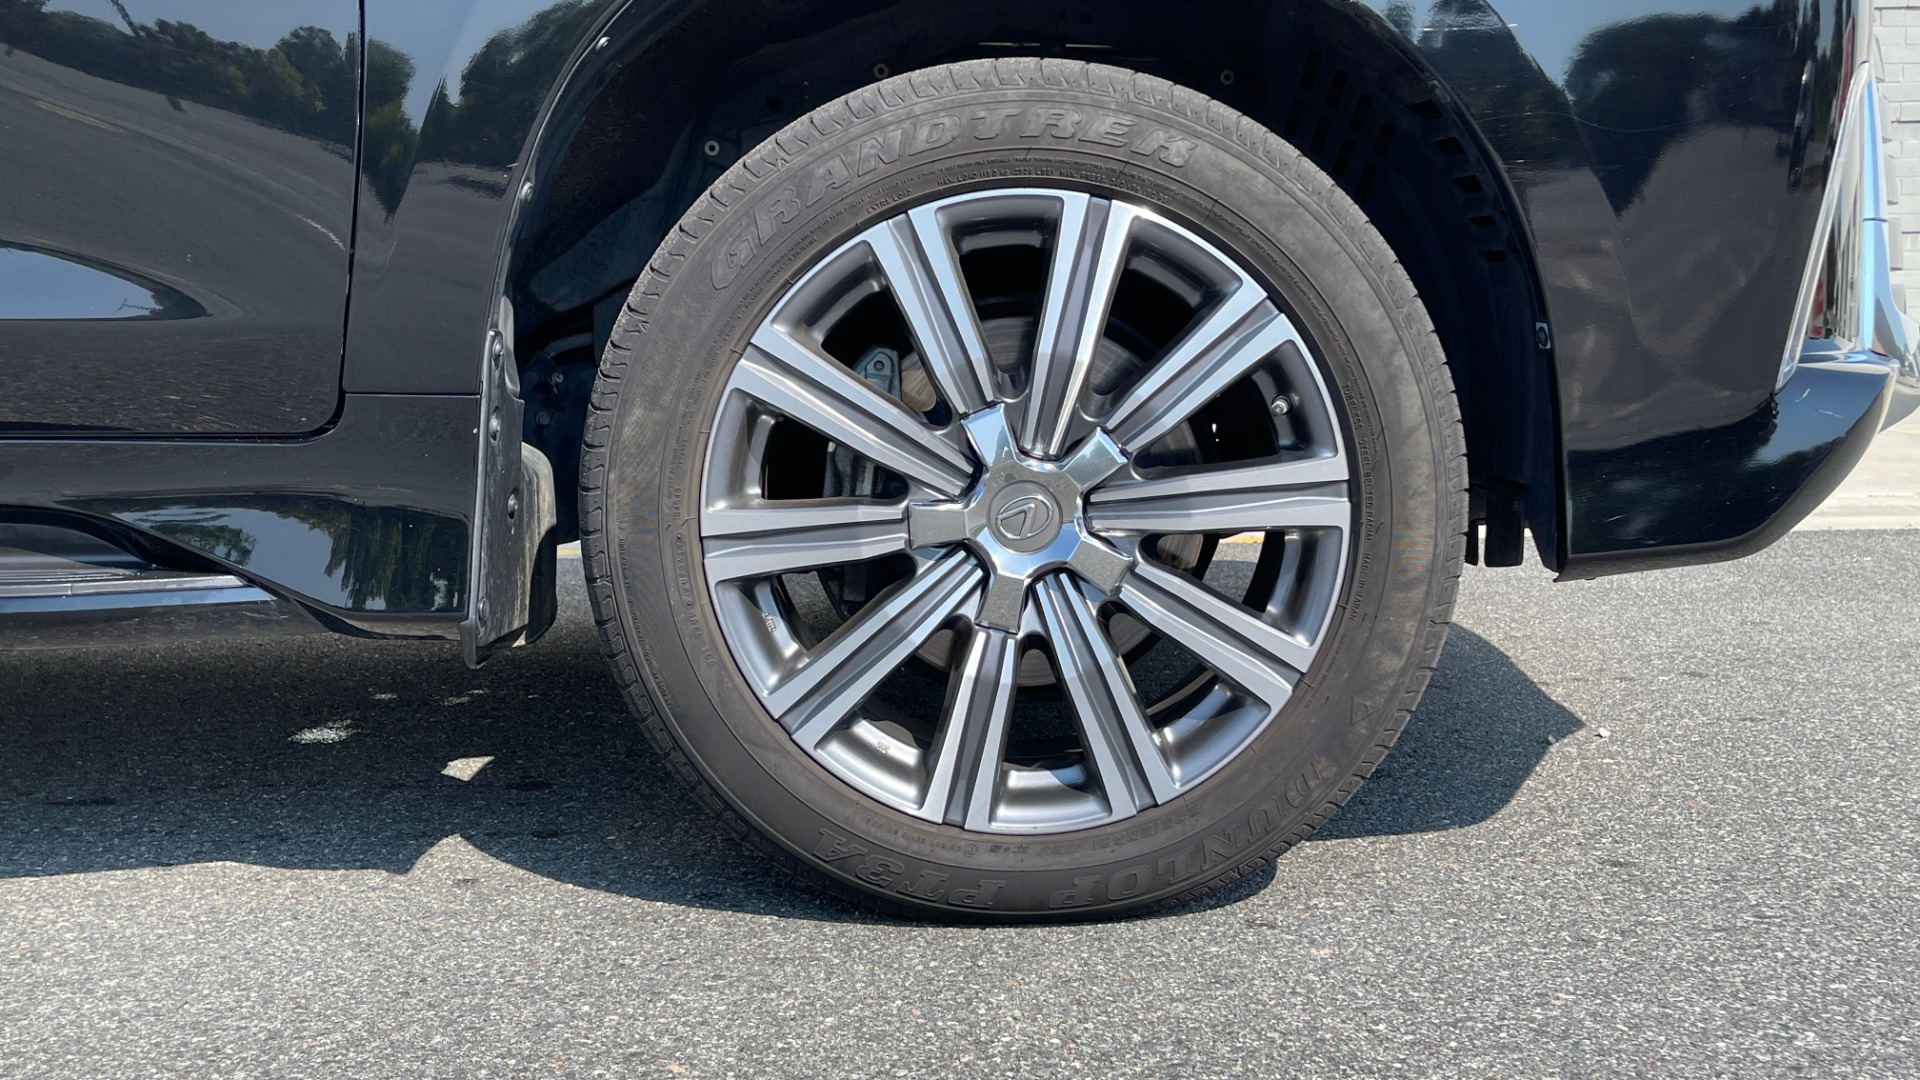 Used 2017 Lexus LX 570 LUXURY / 5.7L V8 / NAV / SUNROOF / 3-ROW / DVD / REARVIEW for sale $63,995 at Formula Imports in Charlotte NC 28227 78